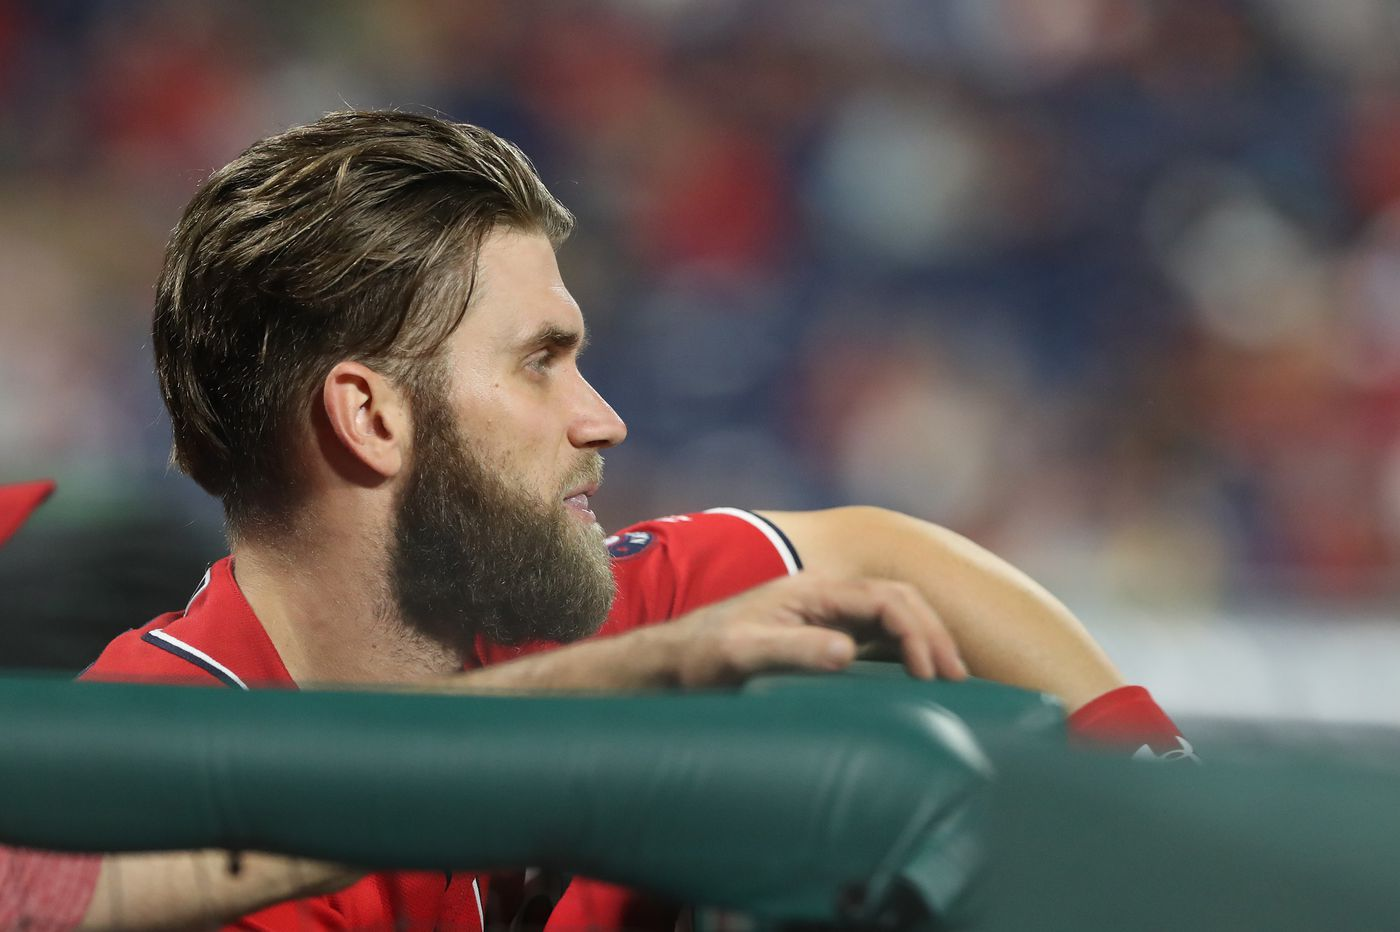 Offering Bryce Harper a chance to opt out would help the Phillies, too | Analysis